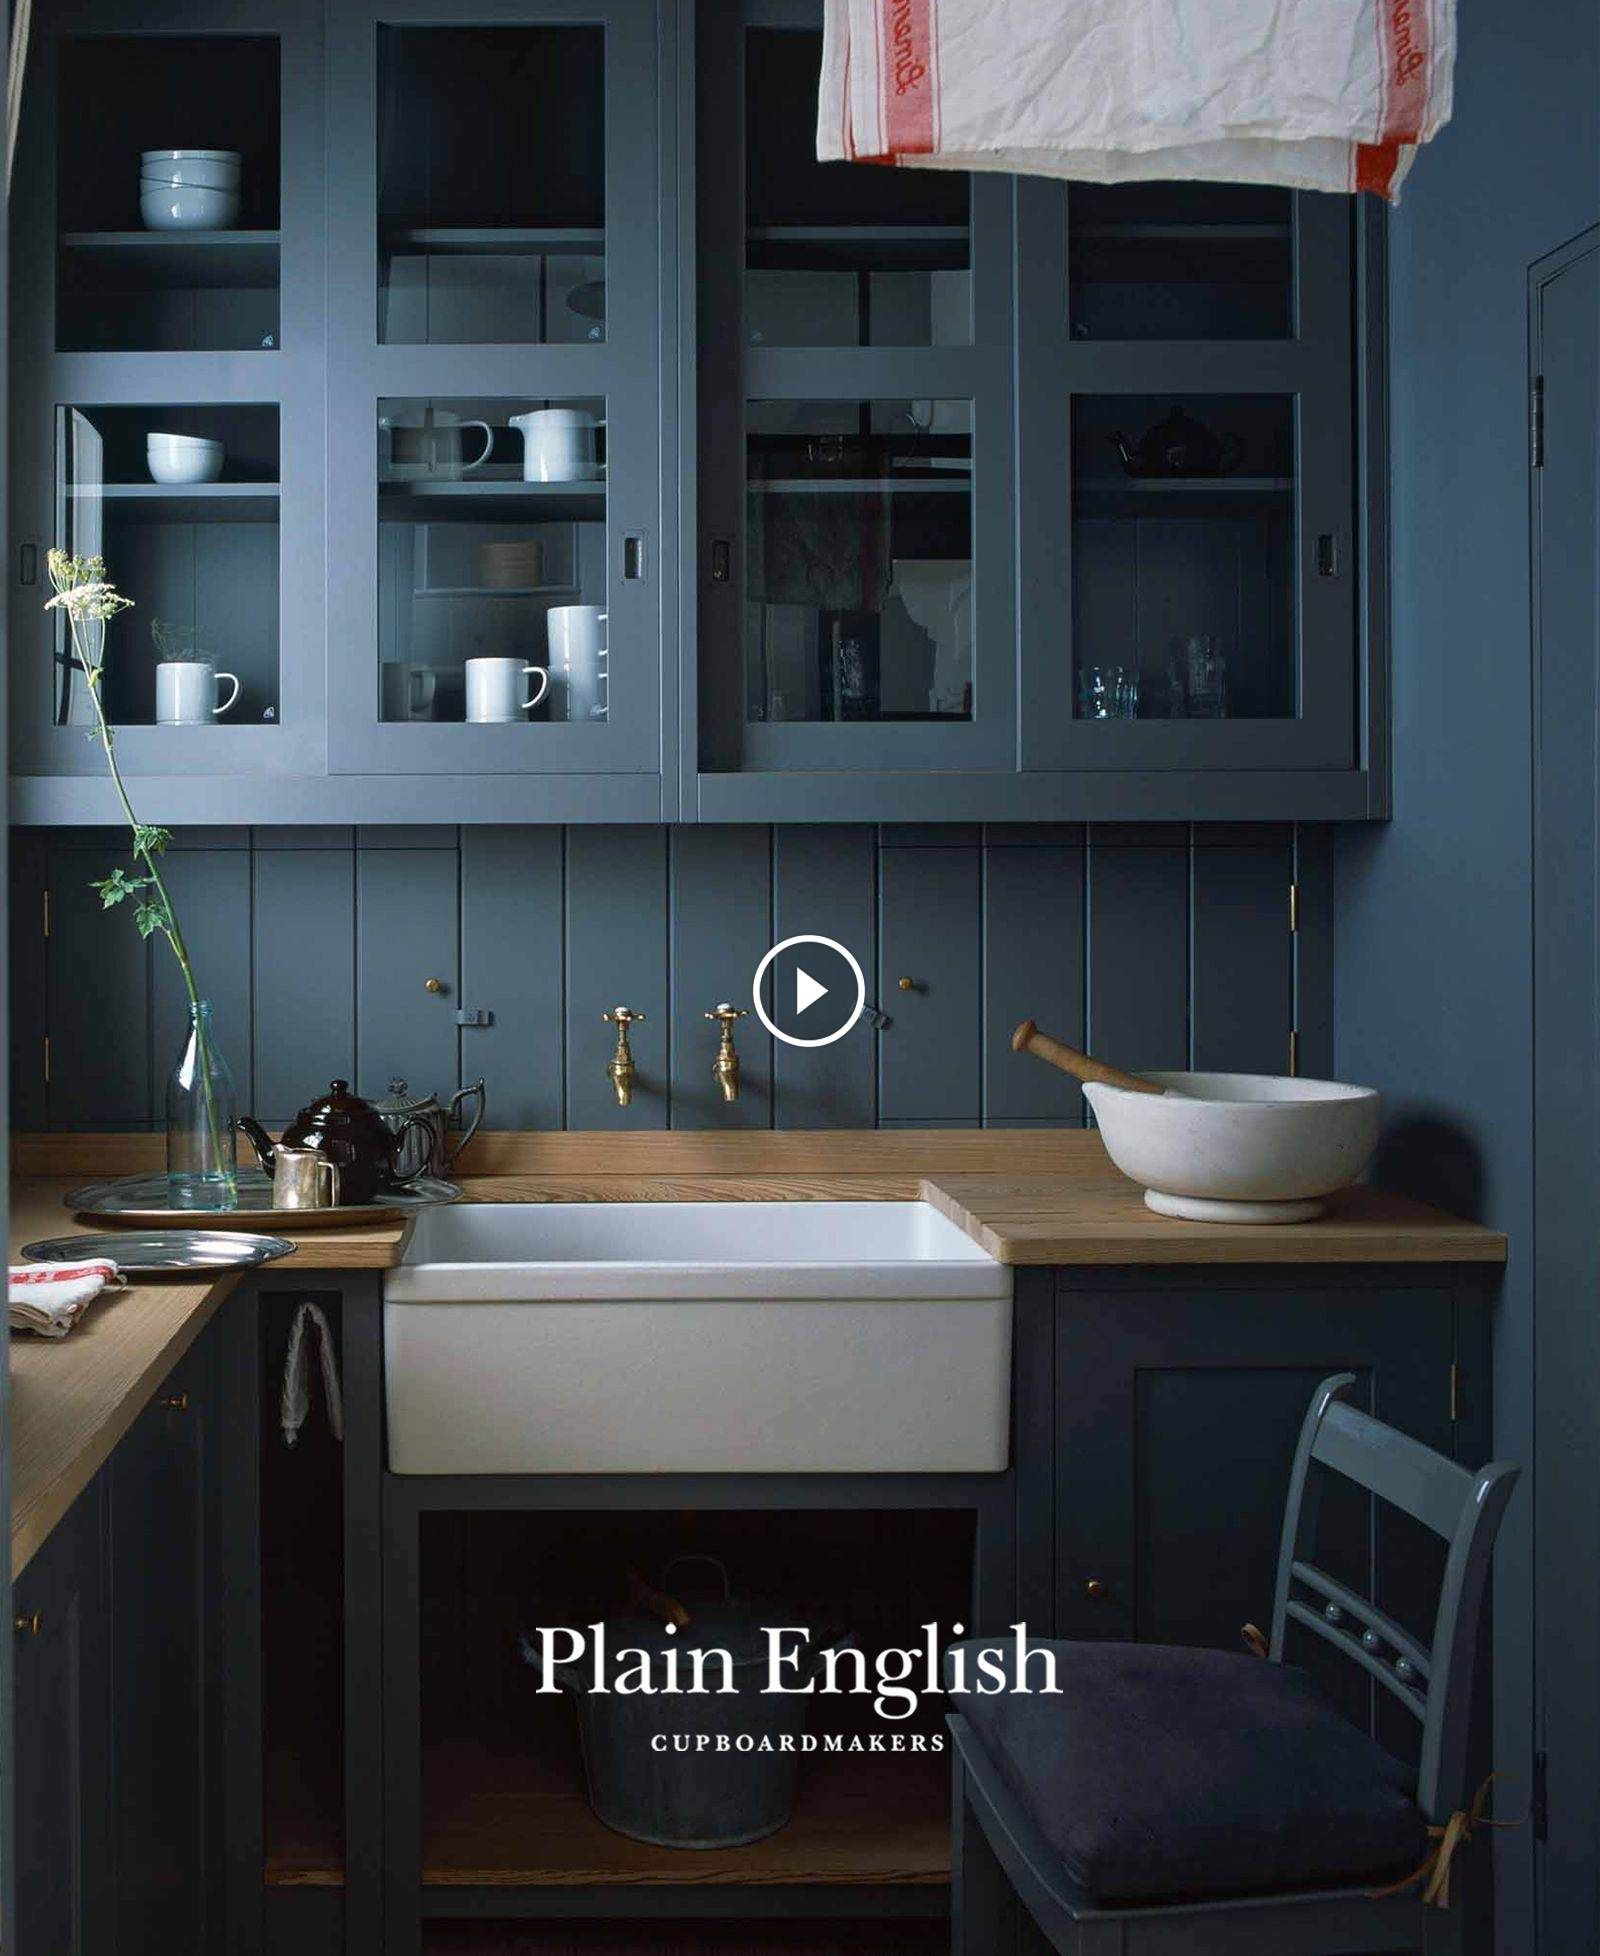 Plain English Kitchen in Brooklyn: An Old-Style Townhouse ...